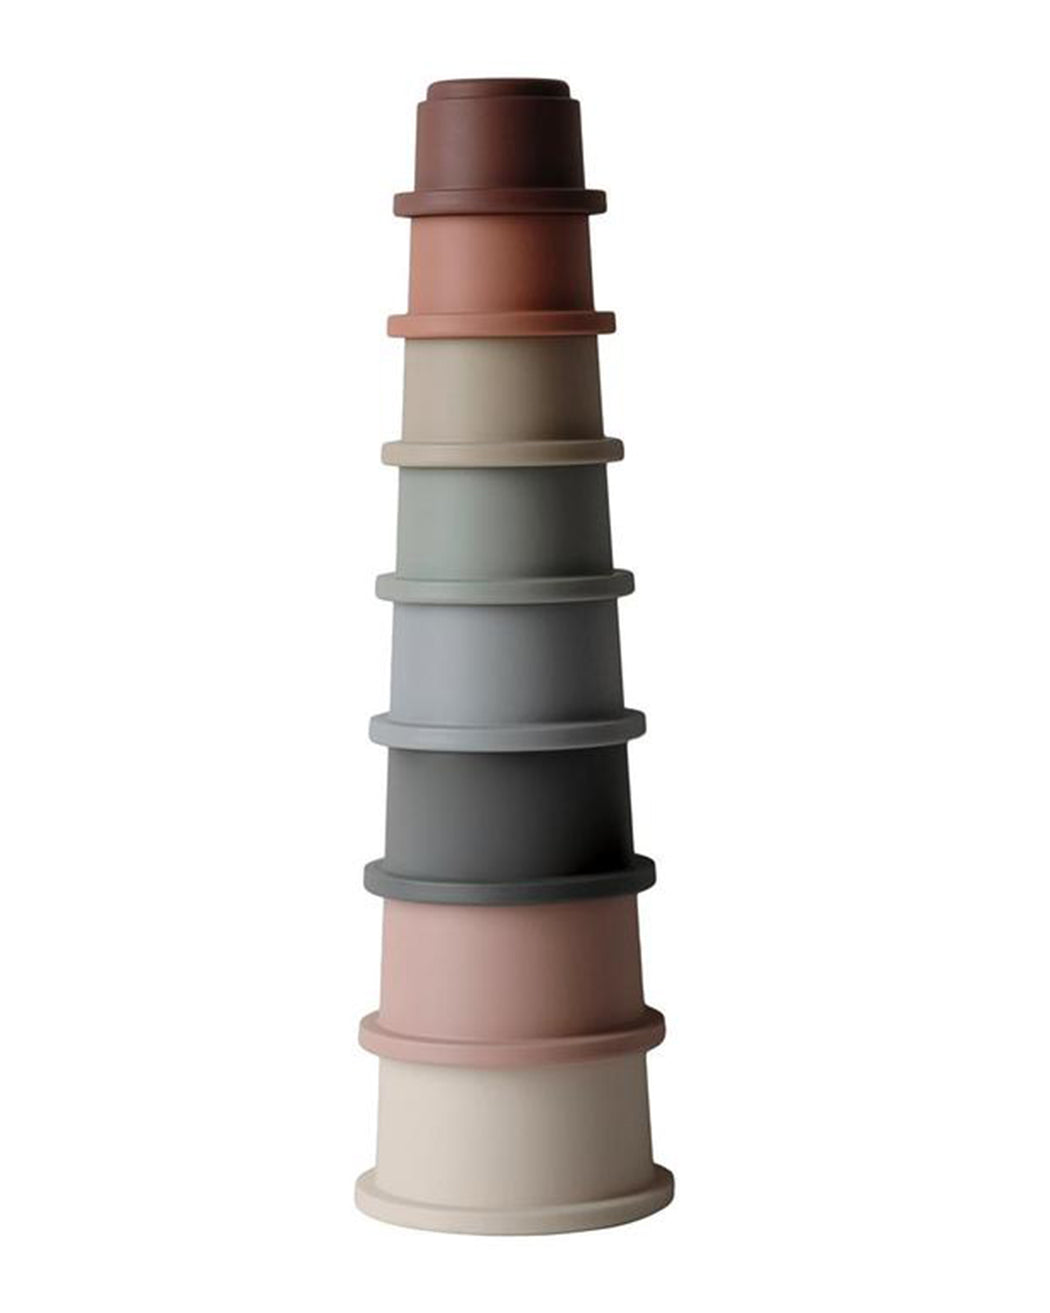 Stacking Cups Toy – Original Colors